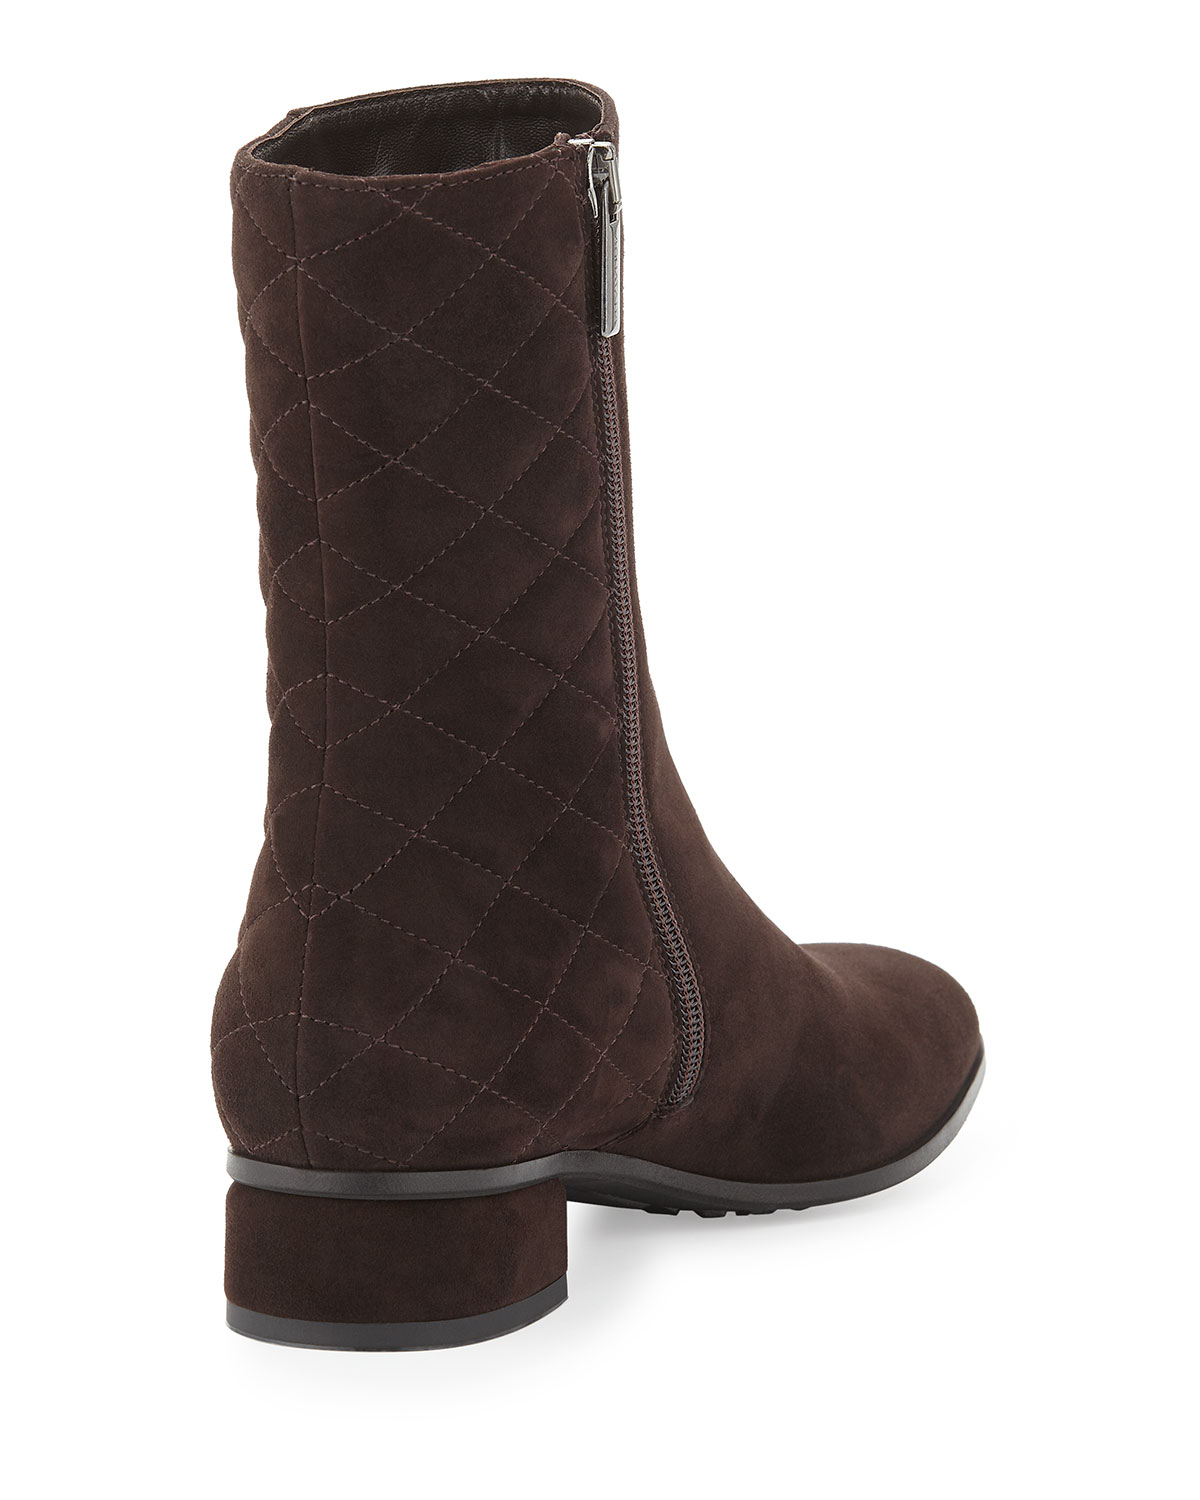 aquatalia lillie quilted suede boot in brown lyst